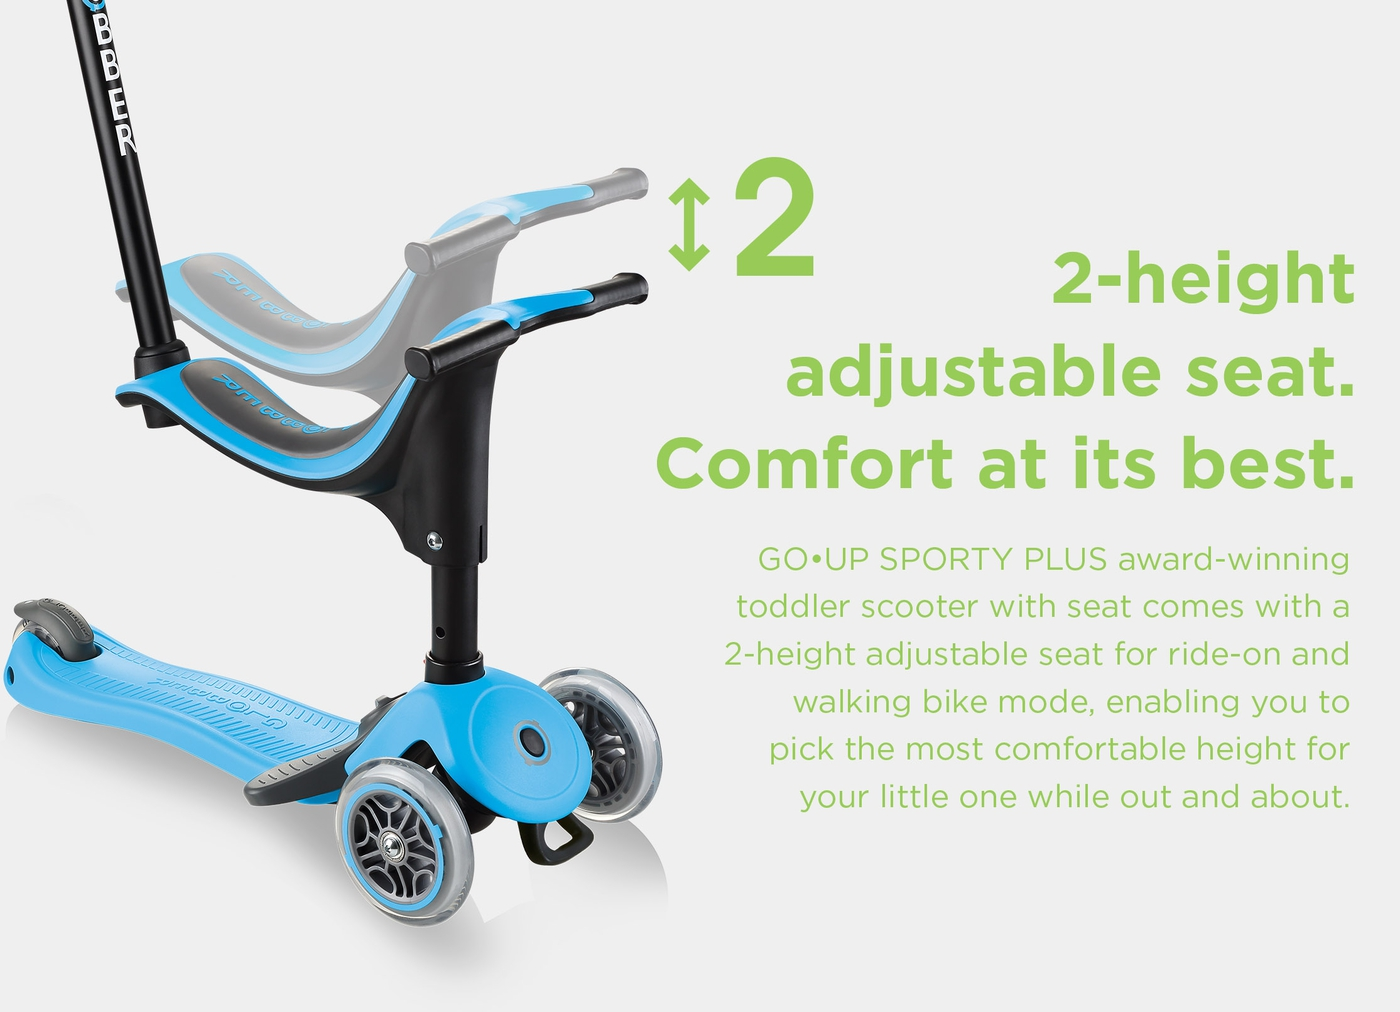 2-height adjustable seat. Comfort at its best.